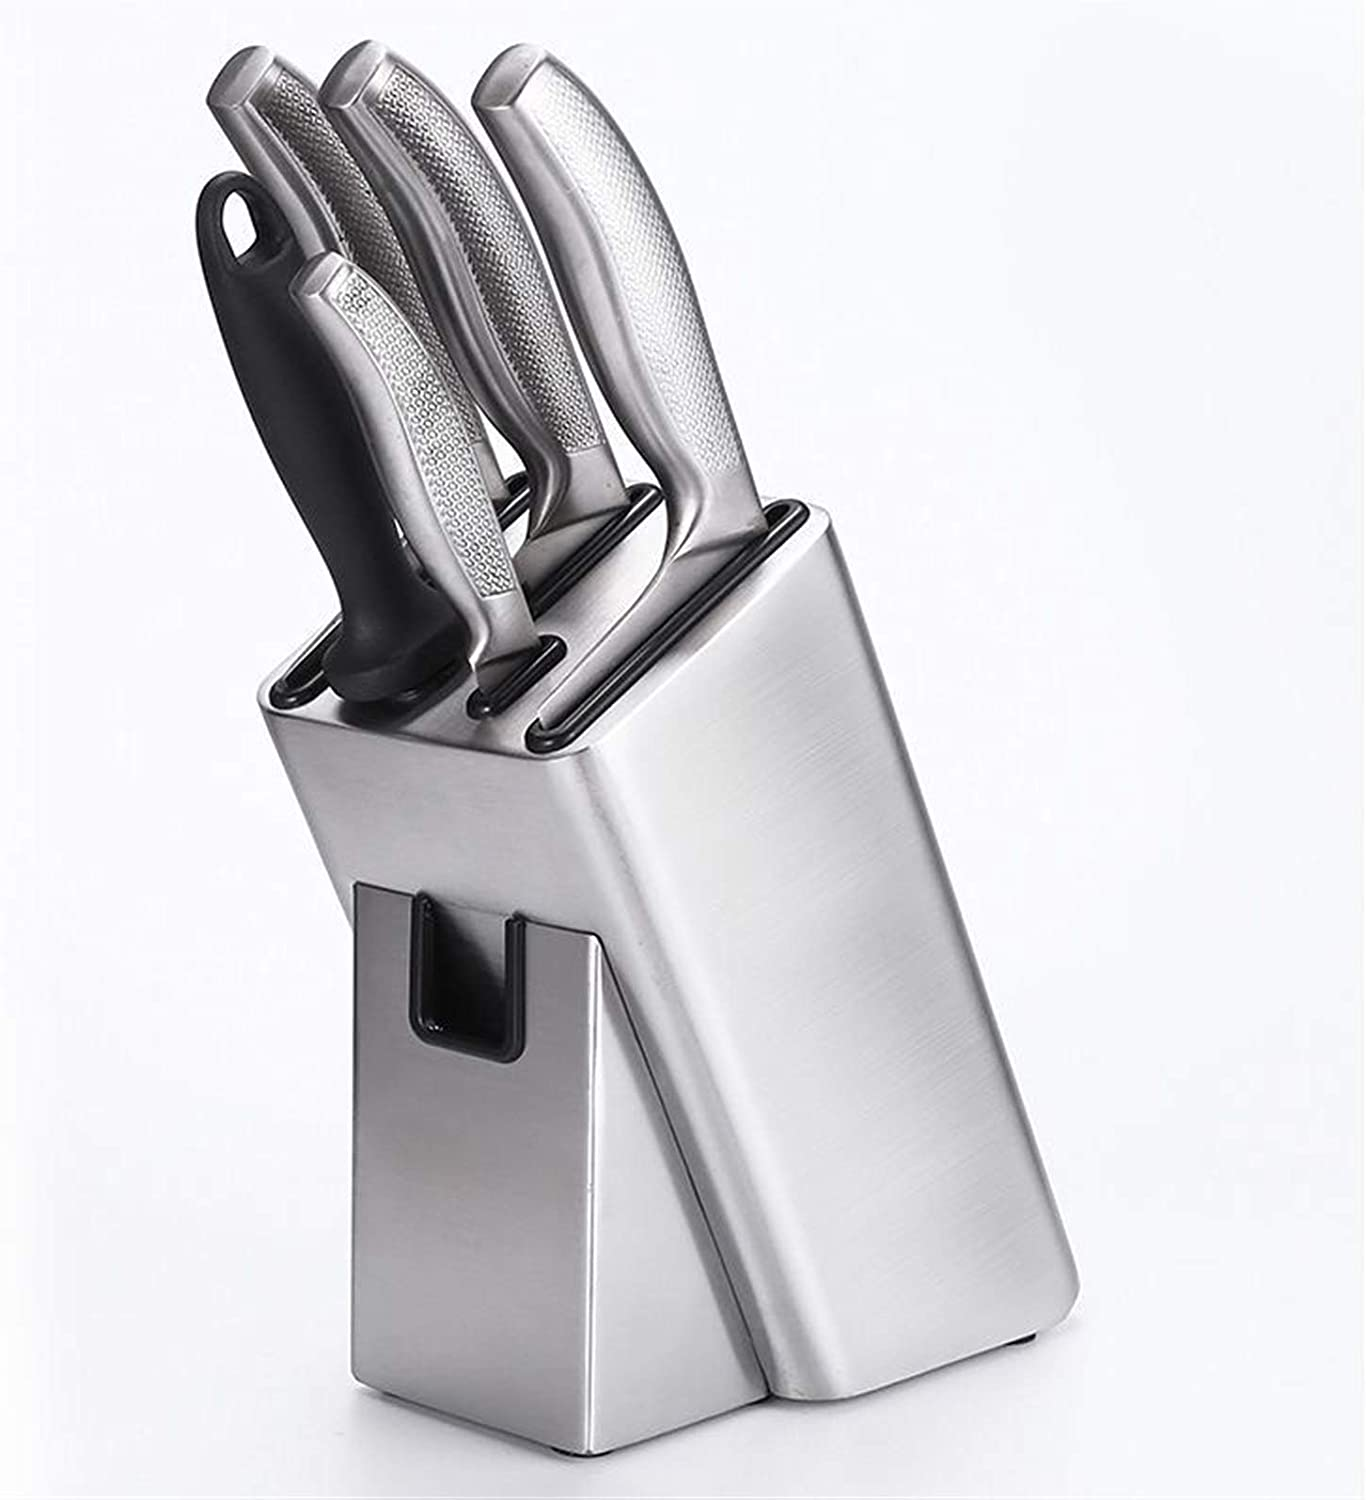 ACQUIRE Stainless Steel Kitchen Knife Hole Safety and trust Scissor Holder With 6 Inexpensive